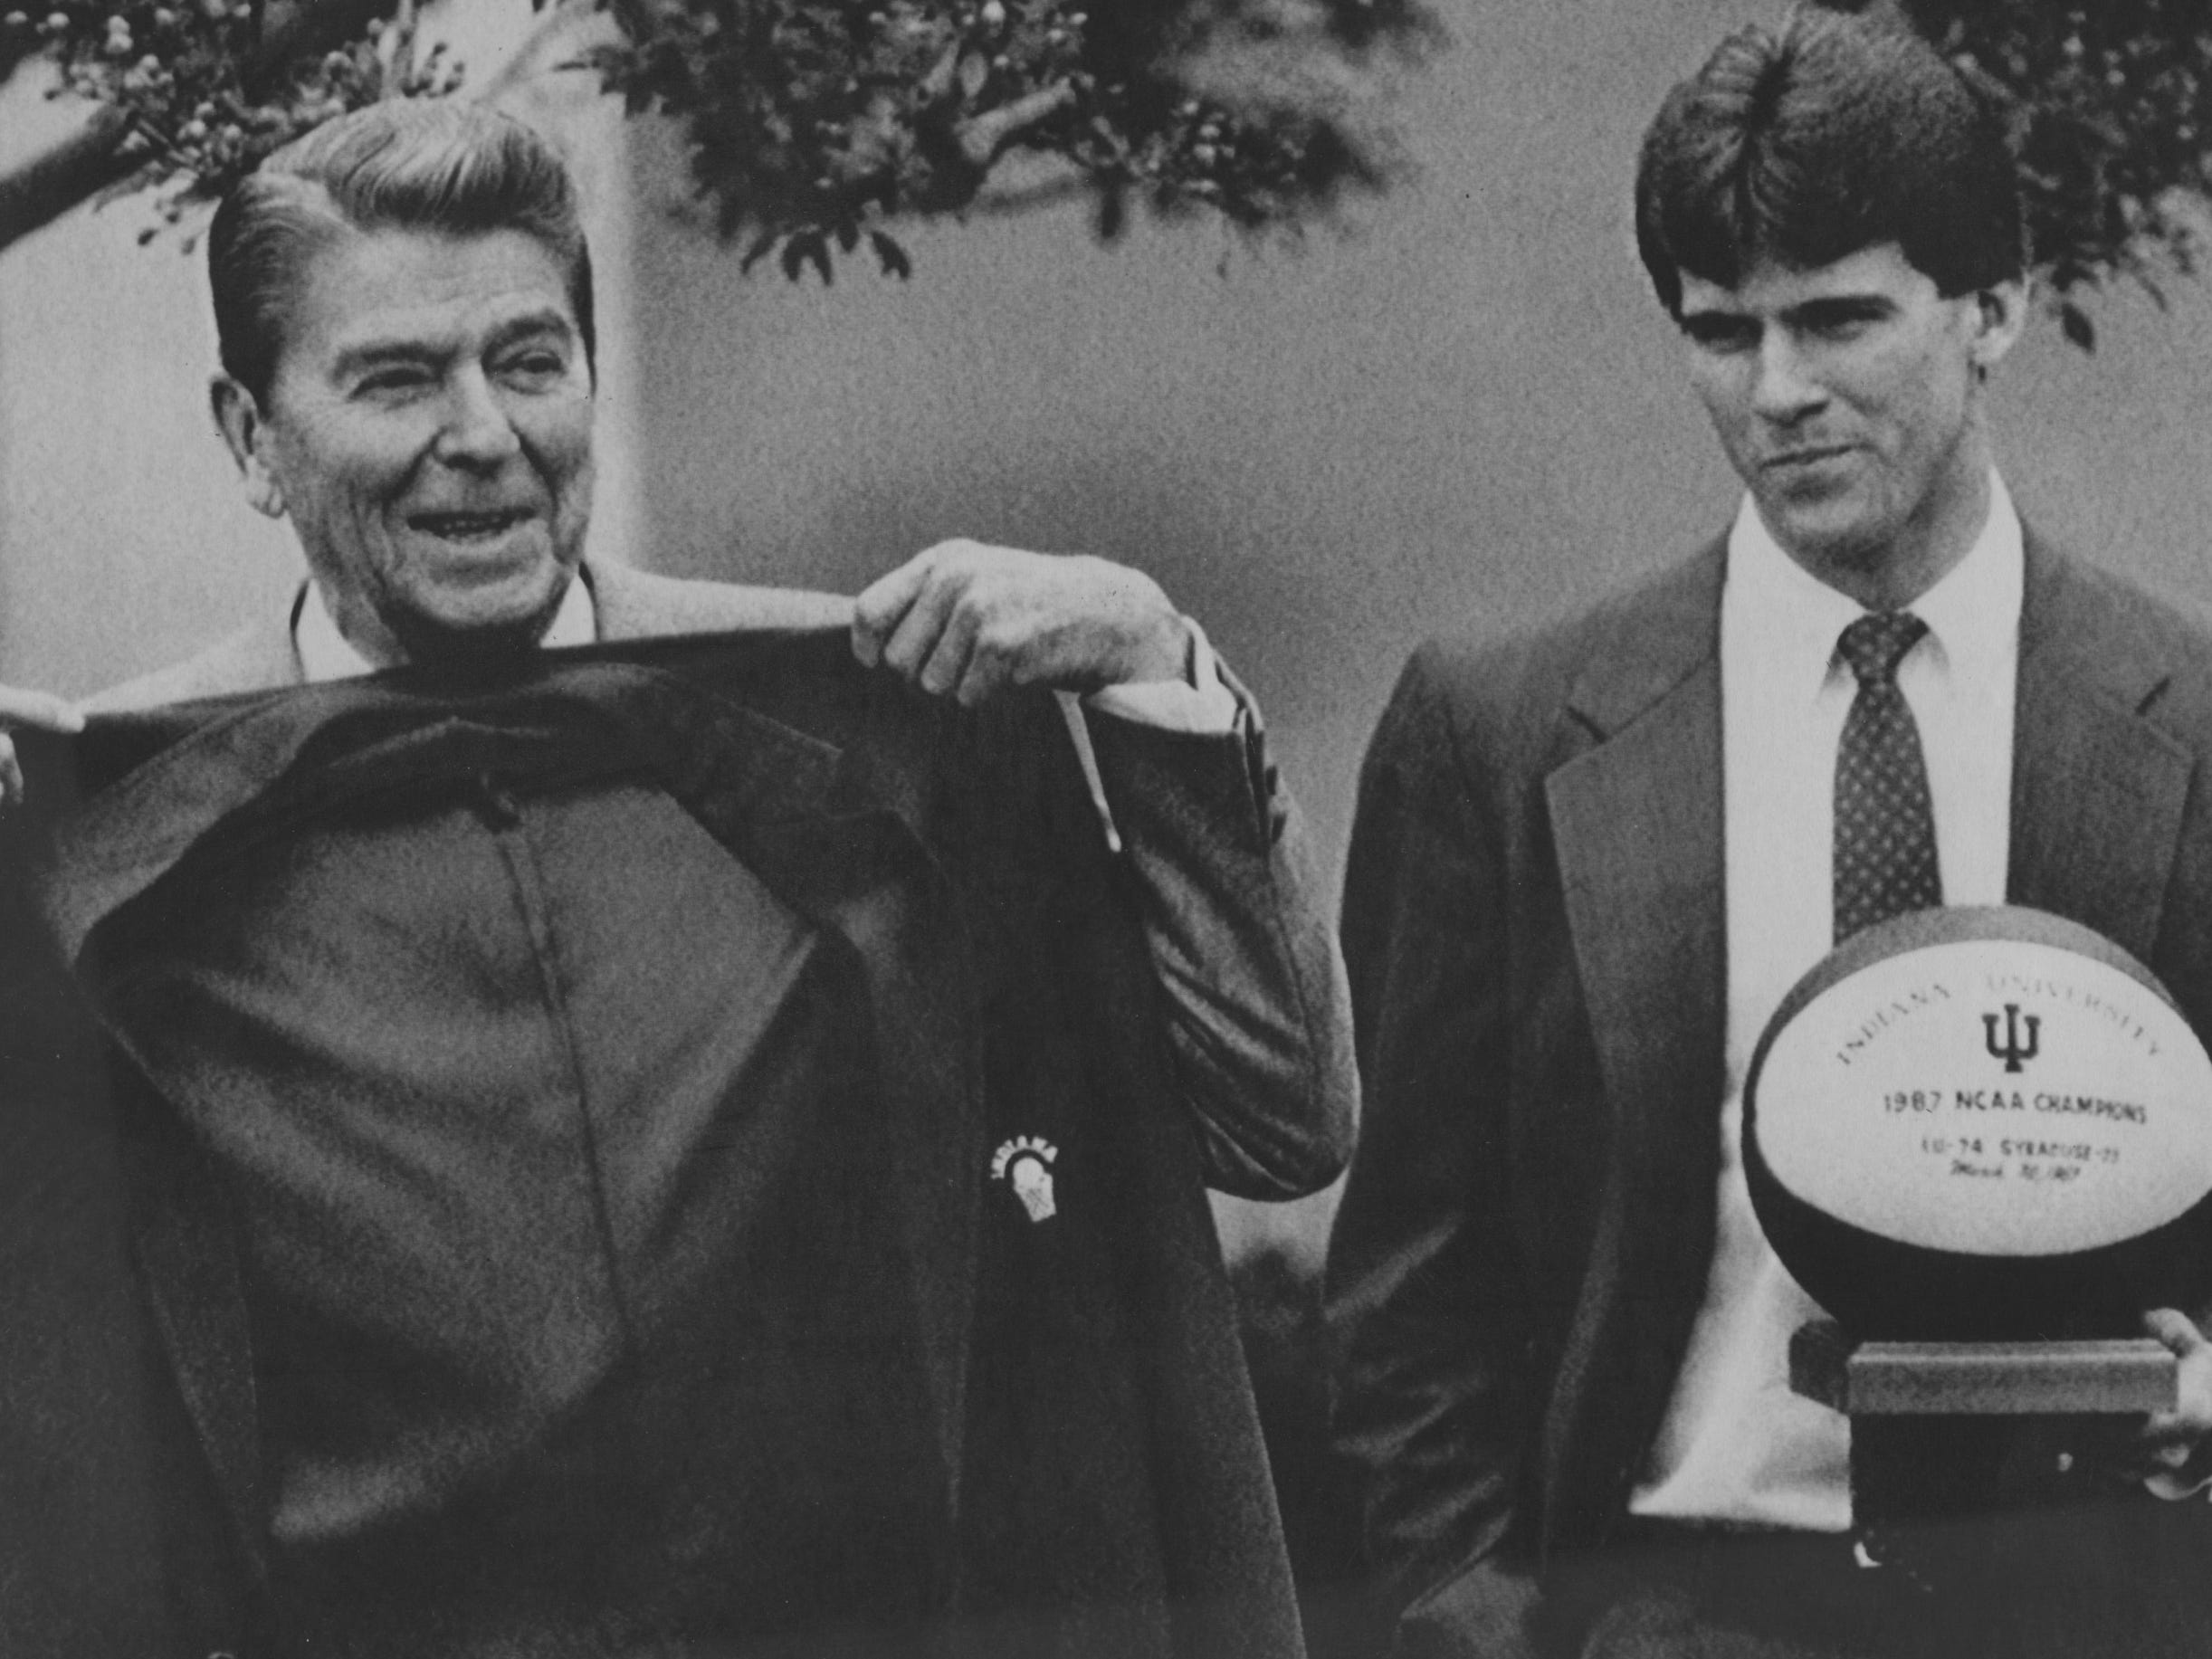 President Ronald Reagan holds up a red blazer that was presented to him by members of the Indiana University basketball team during a White House Rose Garden ceremony Friday. Indiana's Steve Alford holds a basketball trophy at right. Regan welcomed the Hoosiers to the White House after they won the 1987 NCAA men's basketball championship.